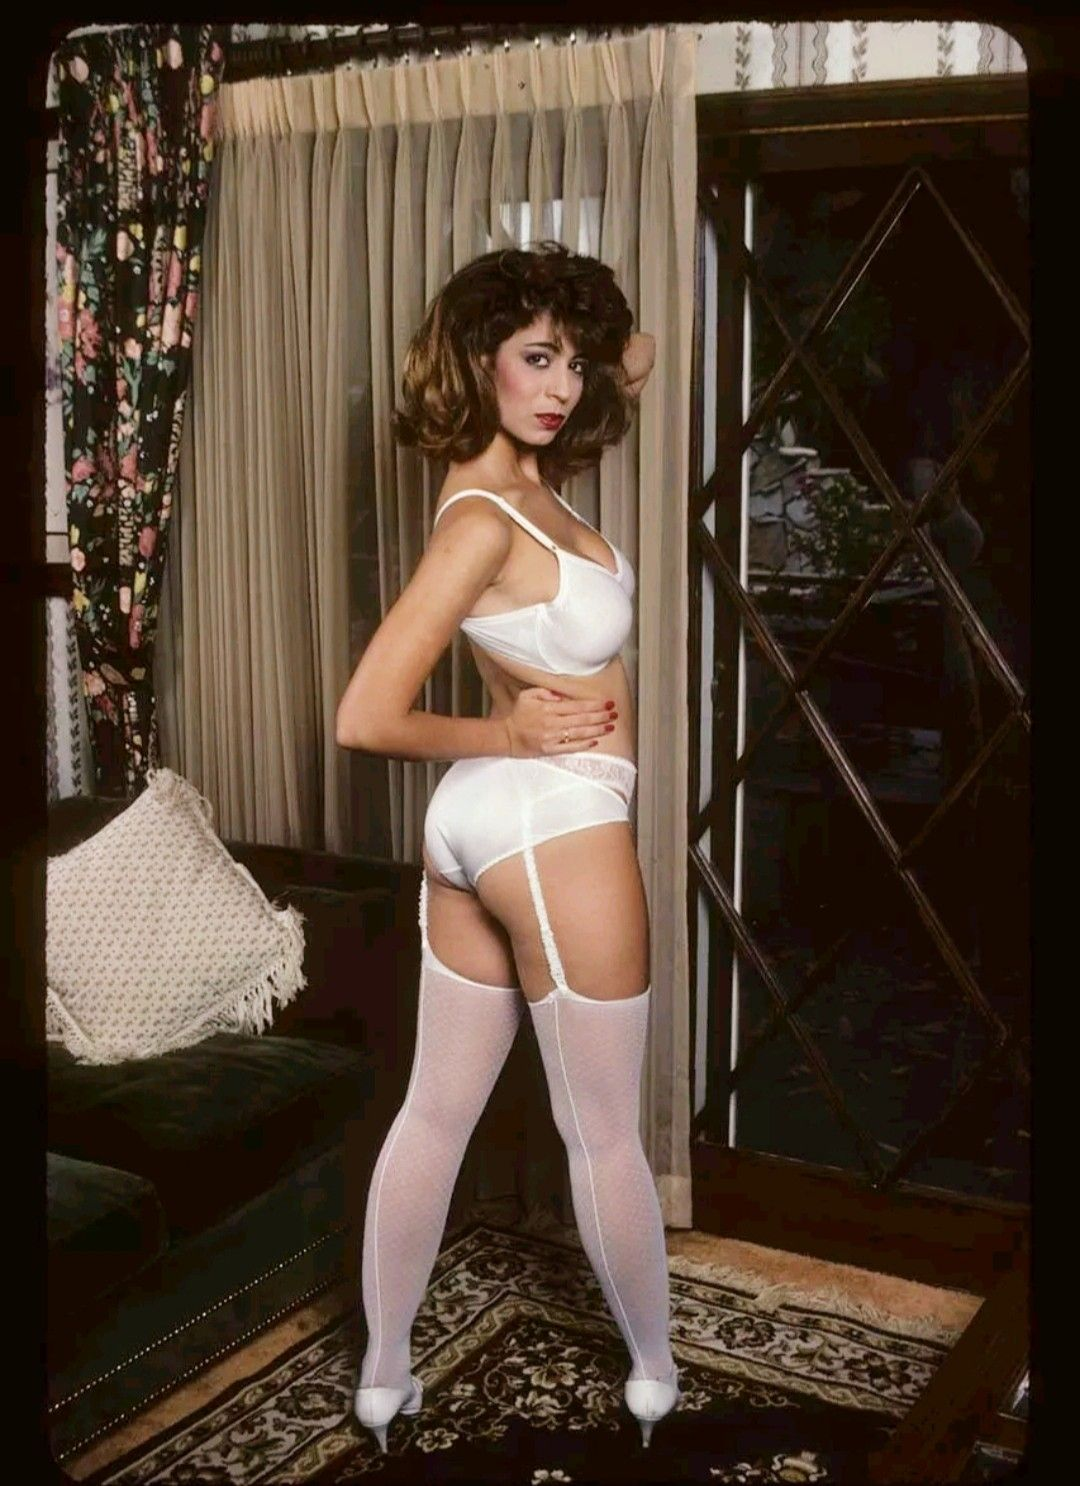 Christy canyon pictures